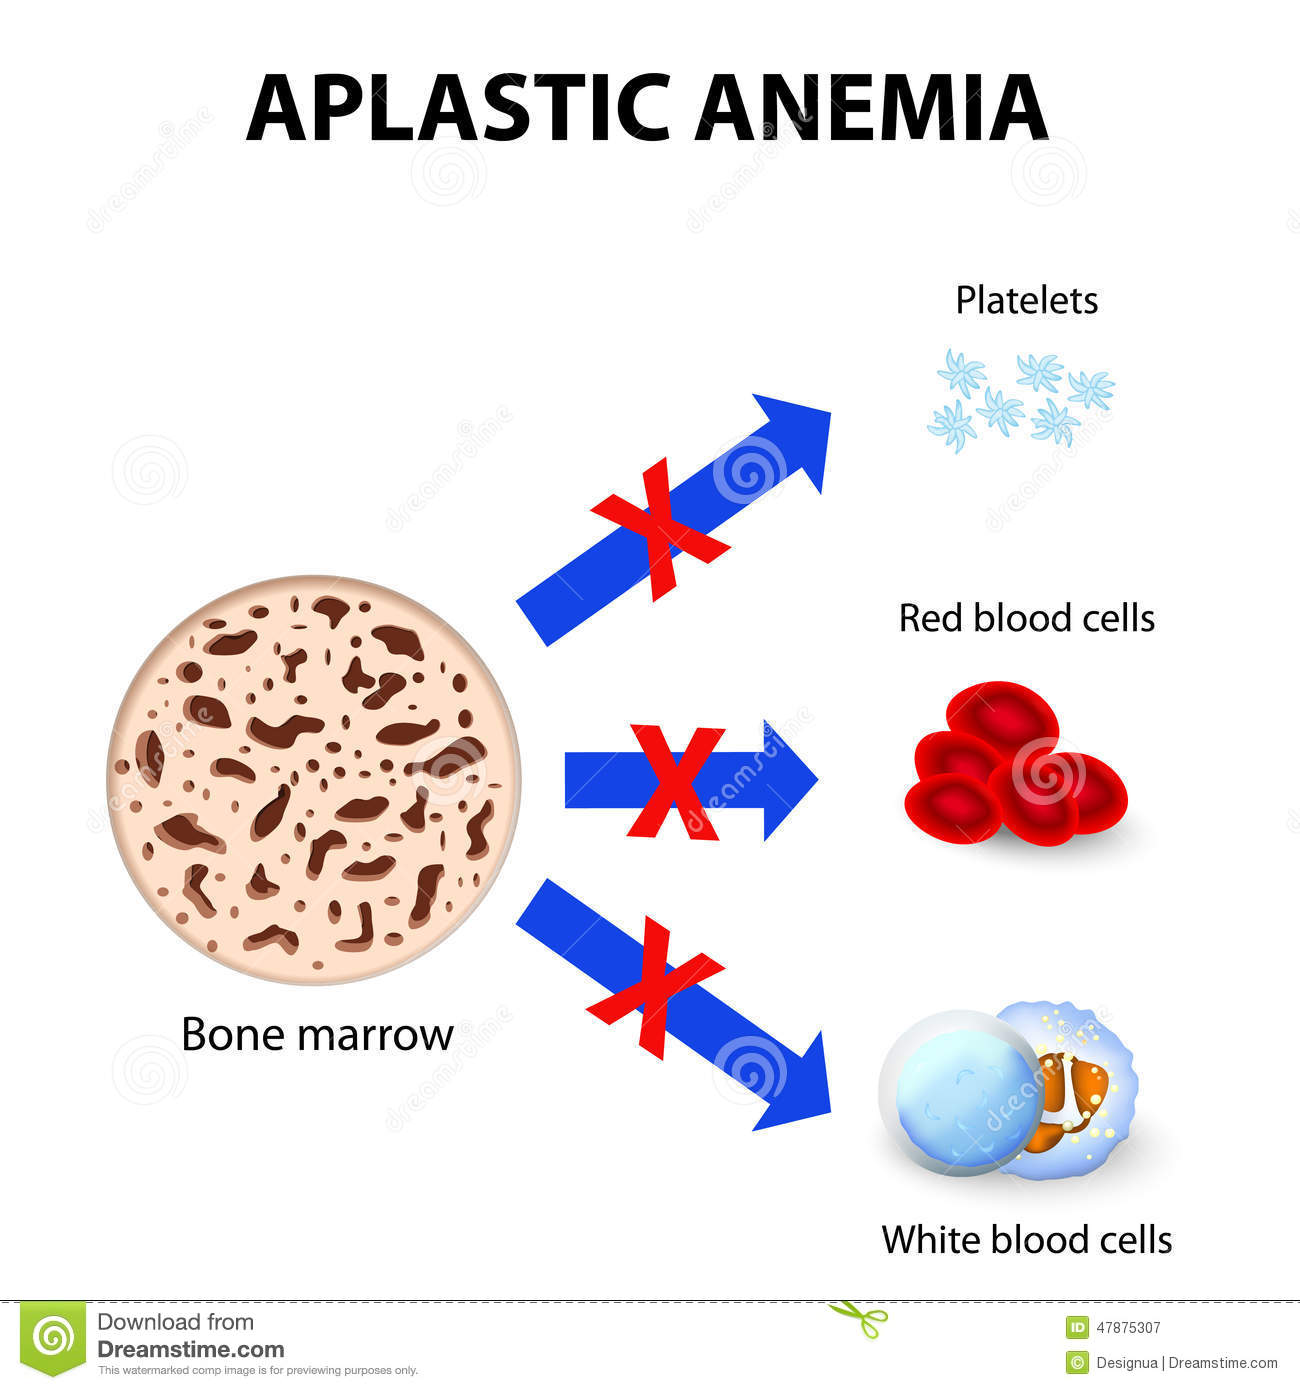 sickle cell vs leukemia essay Running head: sickle cell anemia vs leukemia: battle of the� � page \ mergeformat �1� �� sickle cell anemia vs.